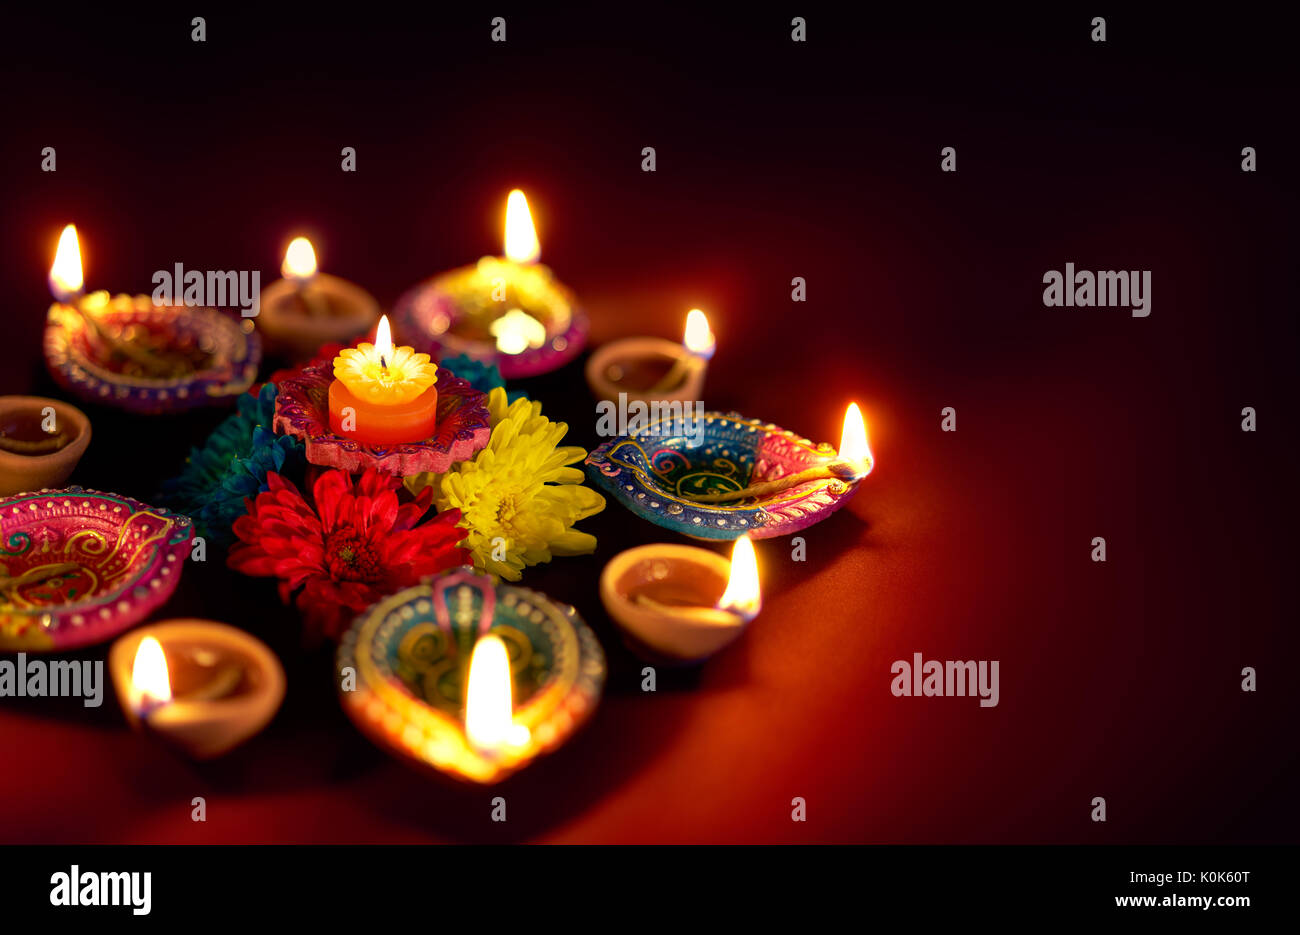 Diwali Oil Lamp - Colorful clay diya lamps with flowers Stock Photo on diwali clip art, diwali pooja, diwali in dipa, diwali lanterns, diwali diva, diwali graphics, diwali lakshmi, diwali gods, diwali goddess coloring page, diwali decoration ideas, diwali celebration india, diwali festival, diwali lights, diwali aarti thali decoration, diwali celebrations in trinidad and tobago, diwali to learn words, diwali rangoli, diwali animated, diwali fireworks, diwali greetings,